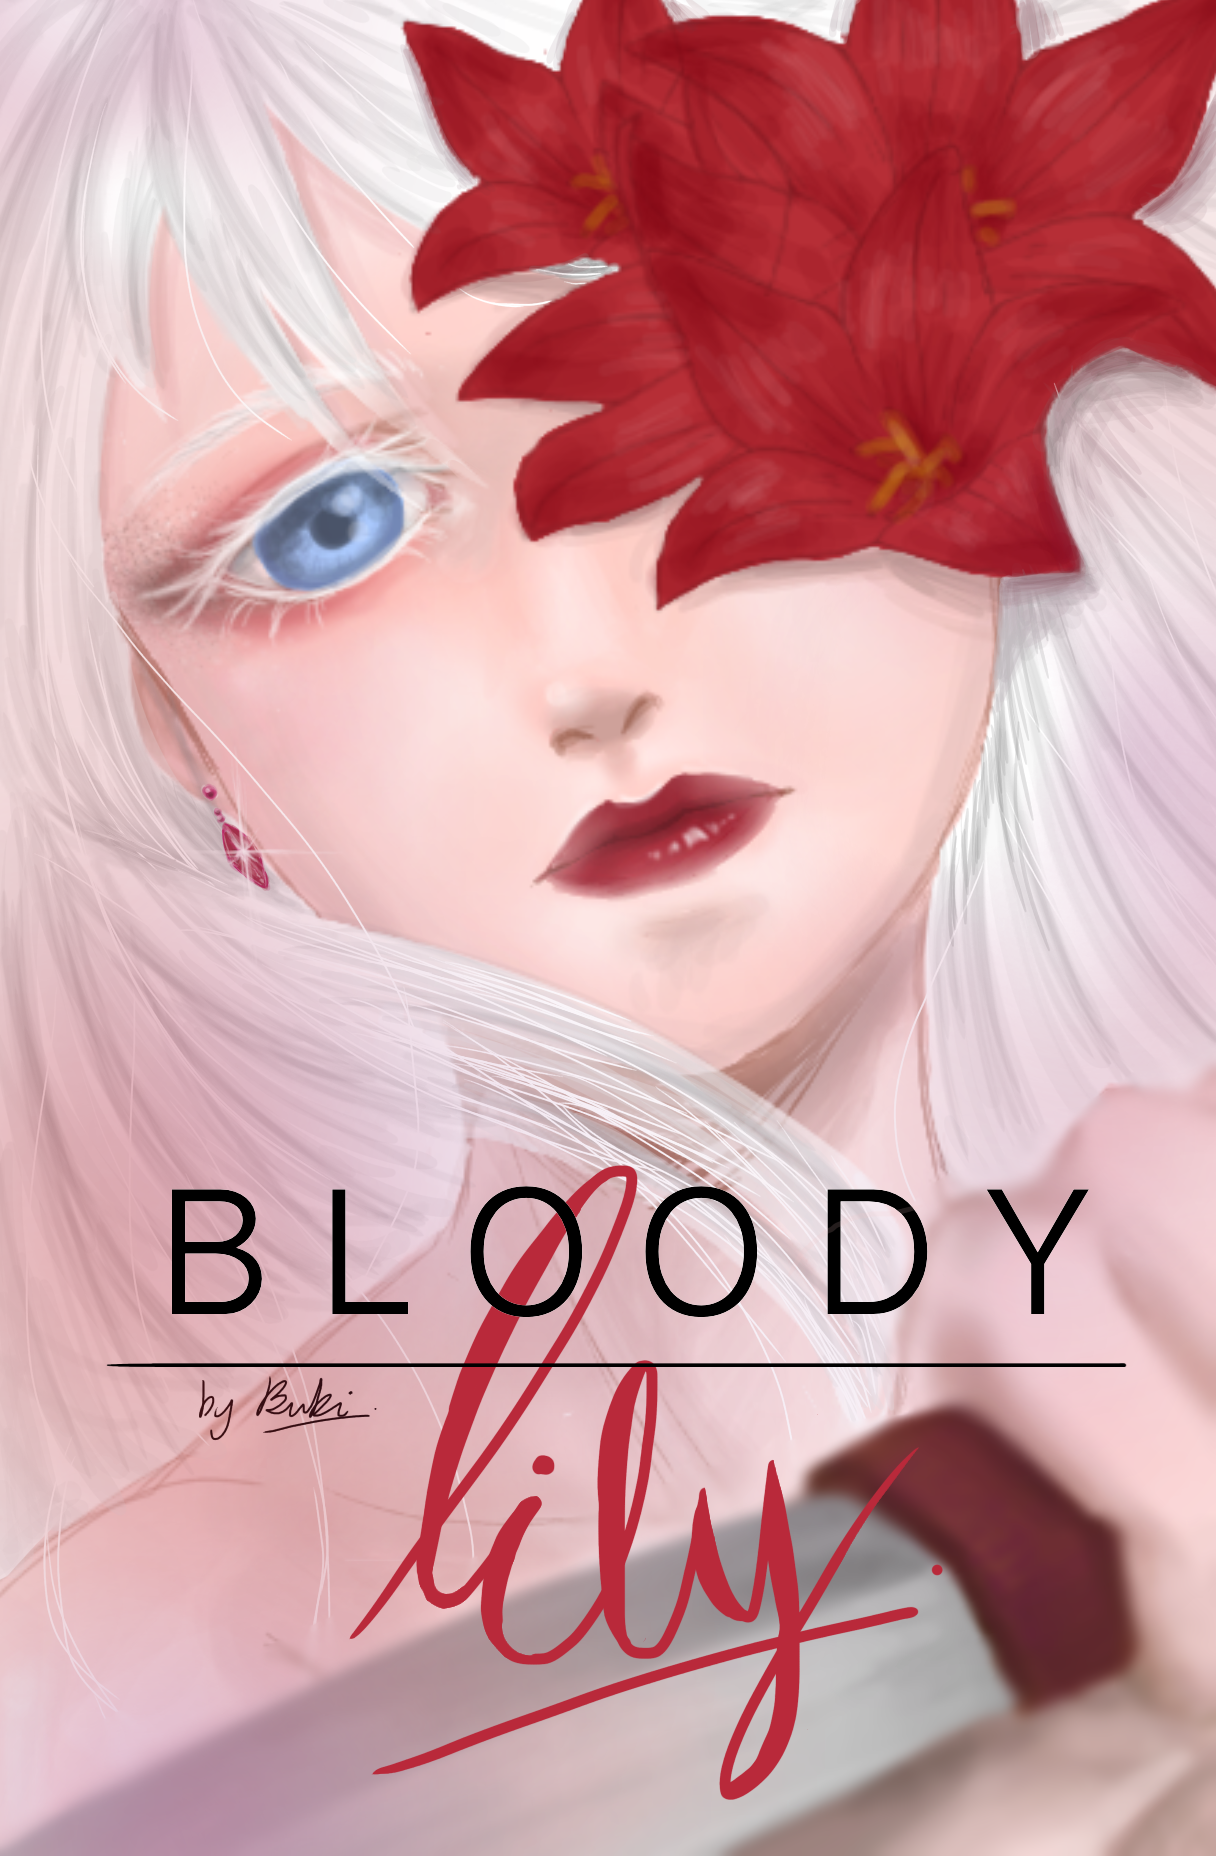 Bloody lily